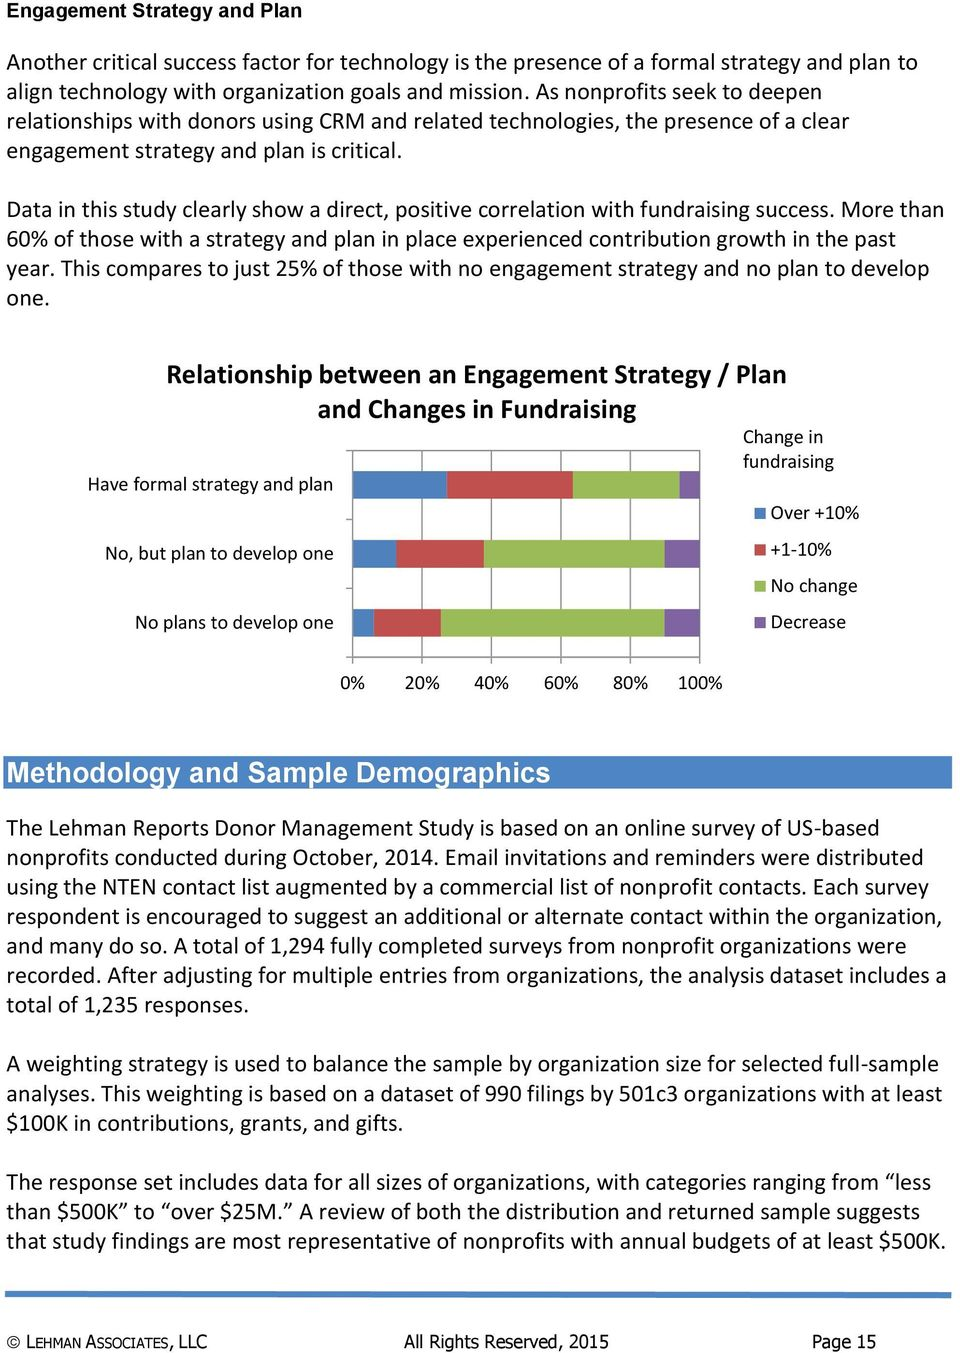 Data in this study clearly show a direct, positive correlation with fundraising success. More than 60% of those with a strategy and plan in place experienced contribution growth in the past year.